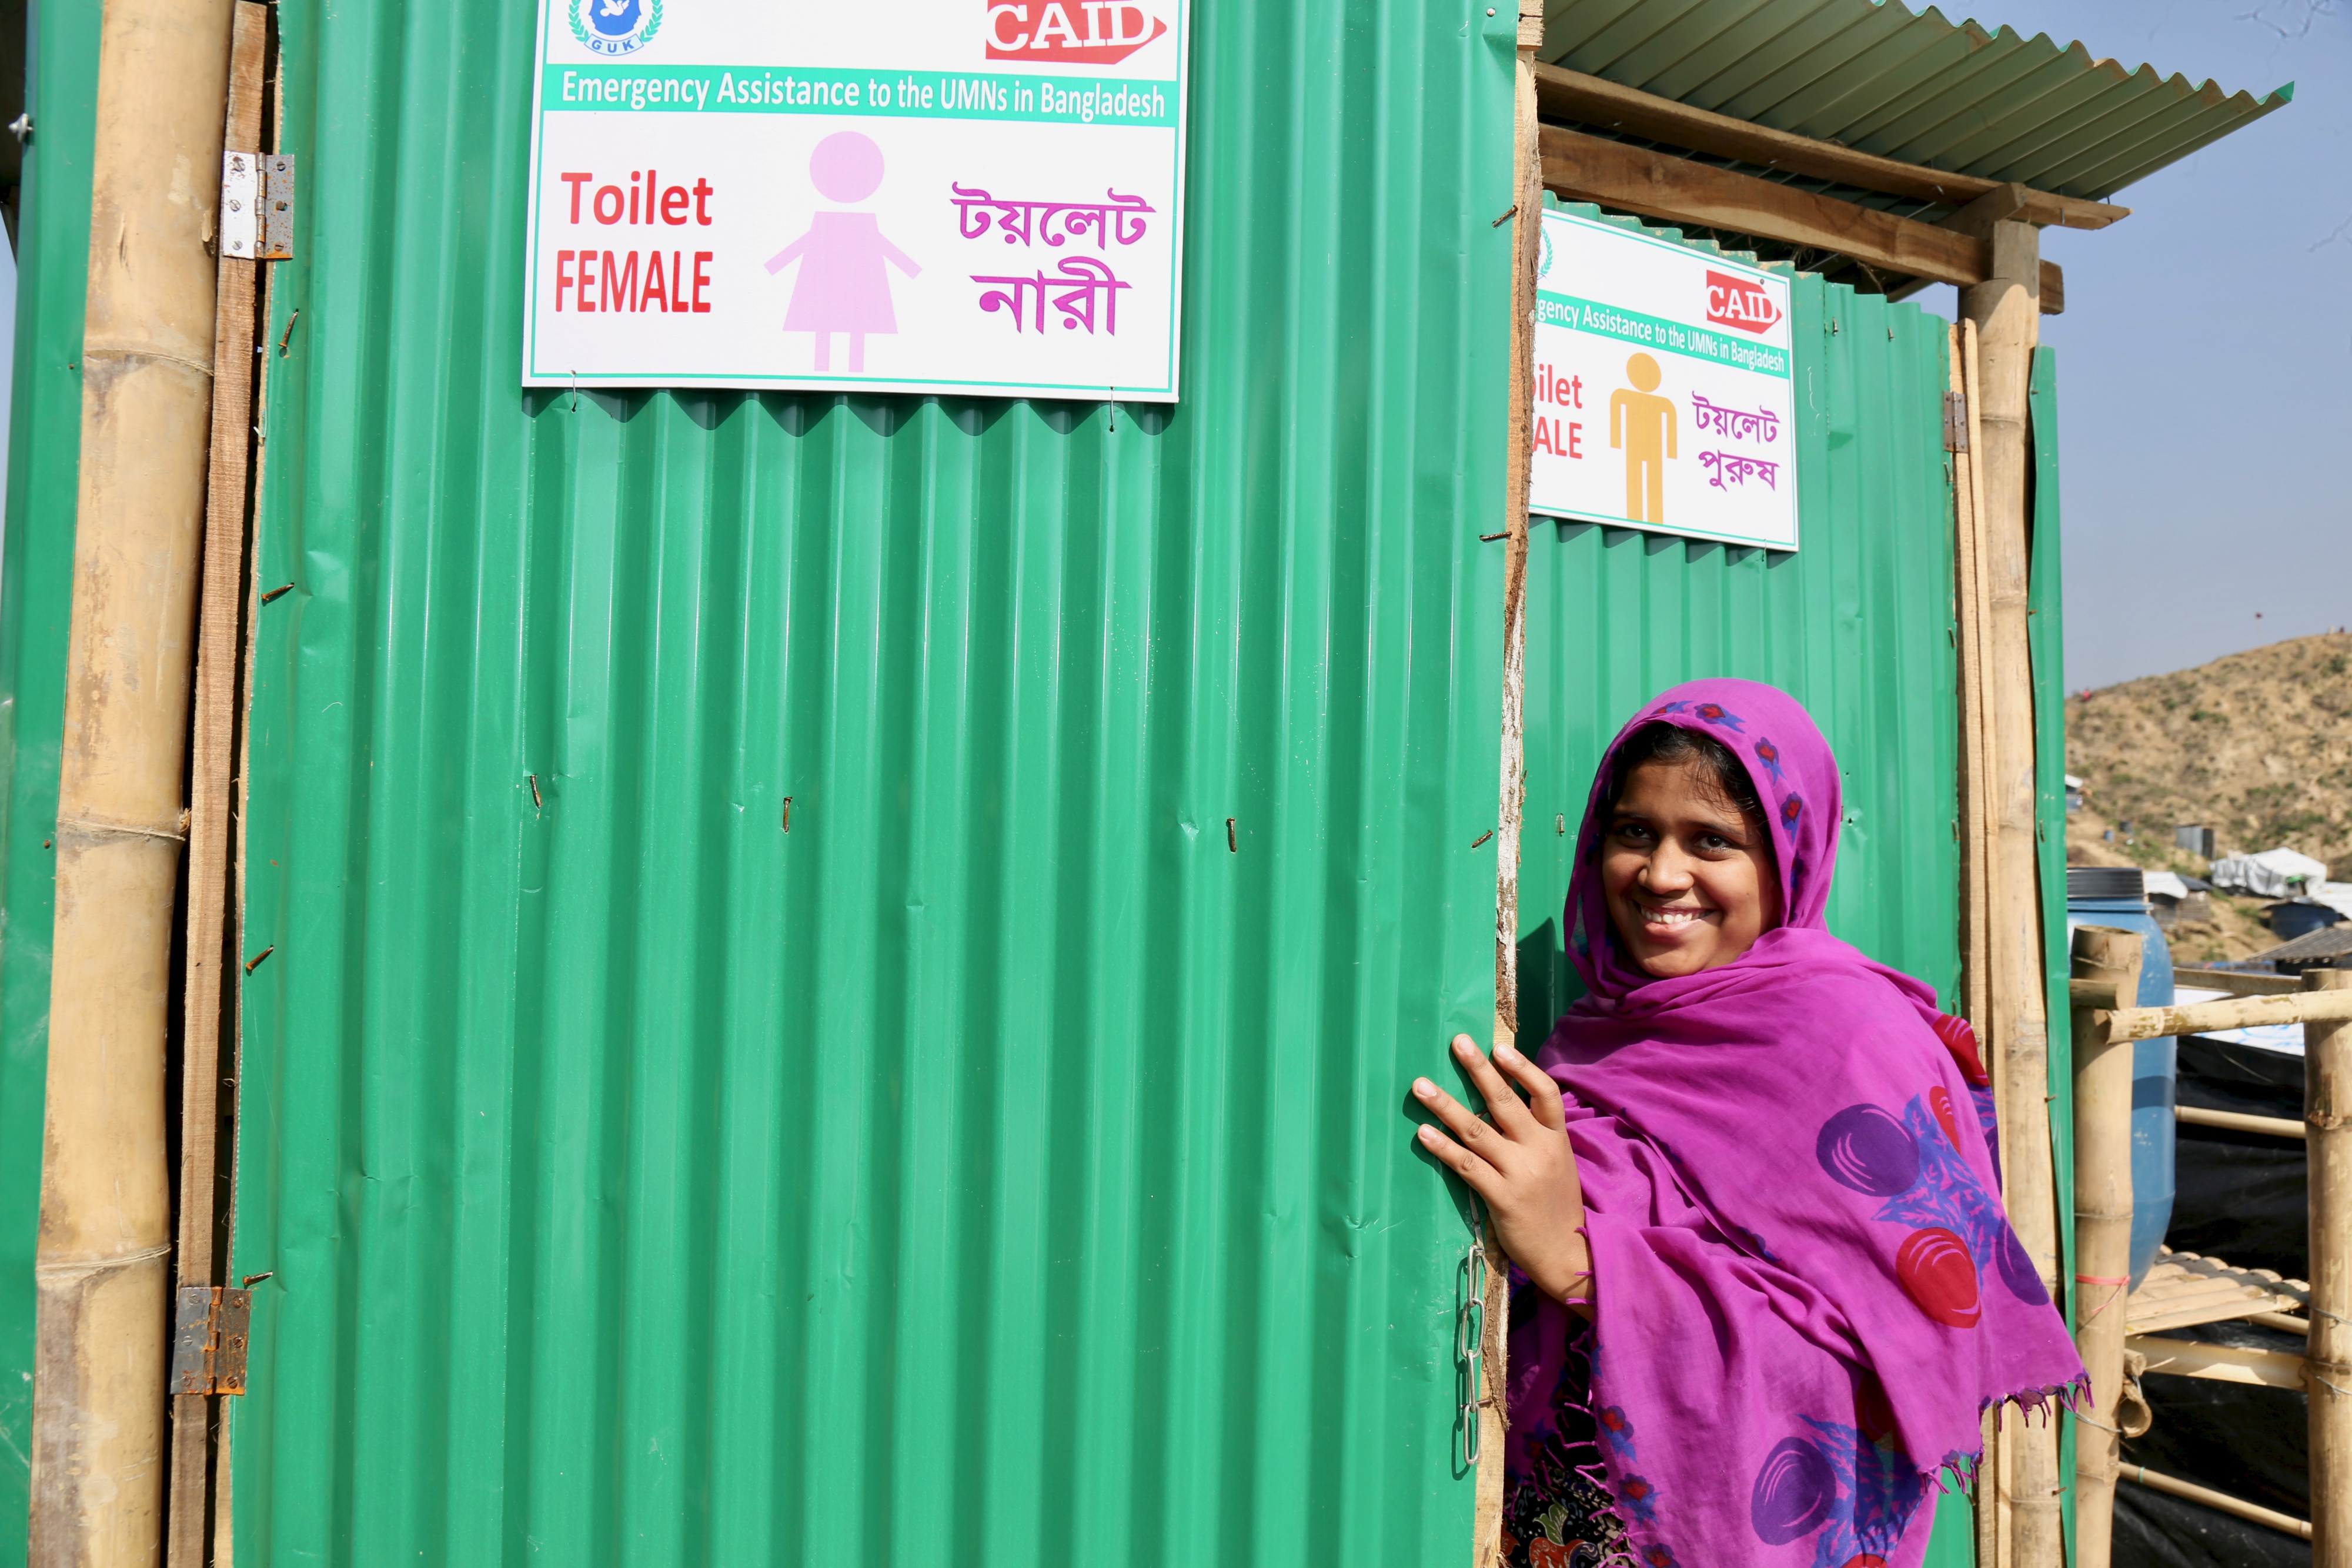 Halima Sudia stands smiling outside women's toilet in Bangladesh camp